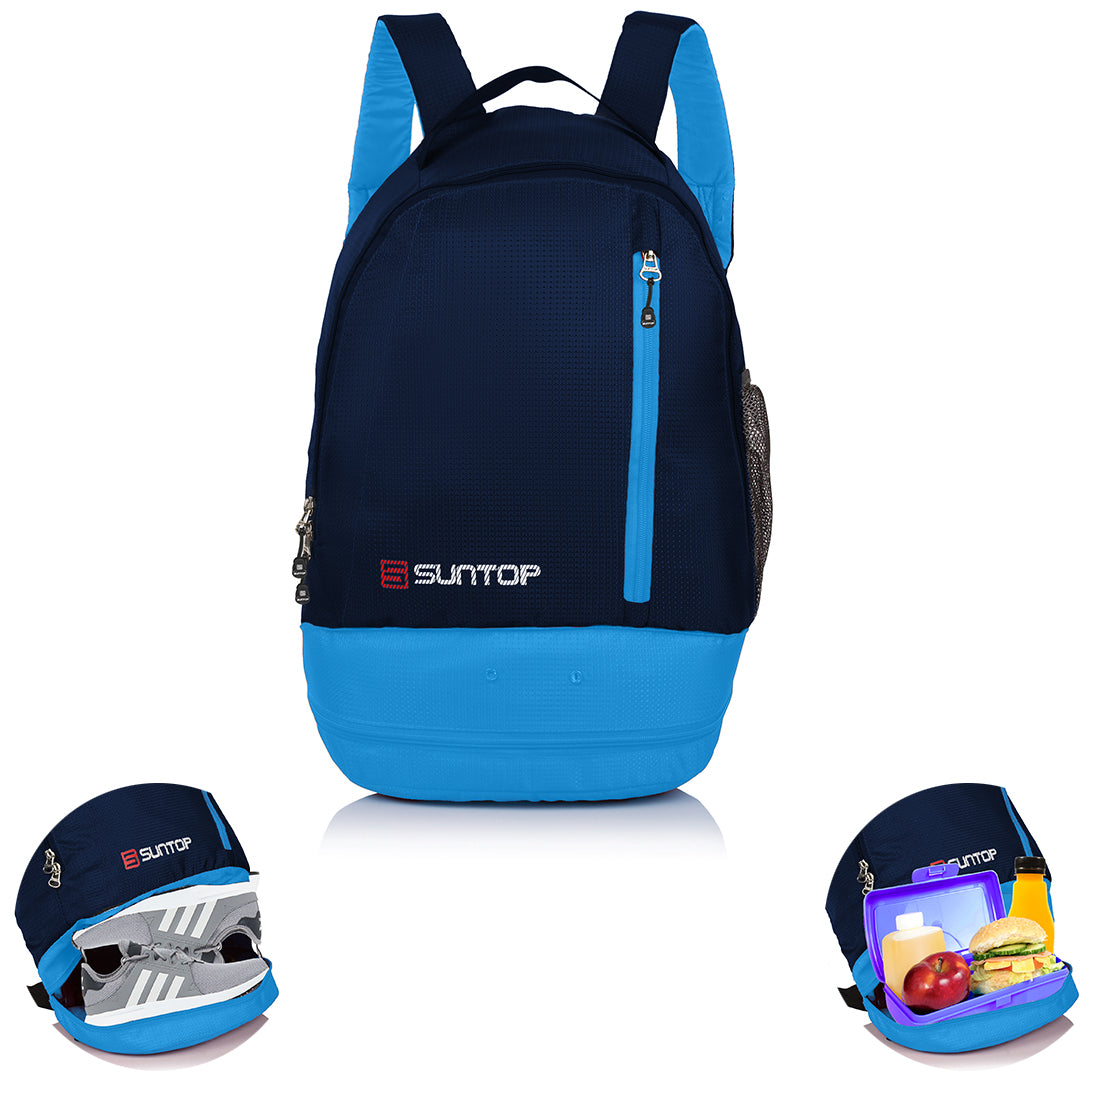 Suntop Air One 20 litres Lightweight Backpack Bag with Shoe Compartment (Sky Blue)